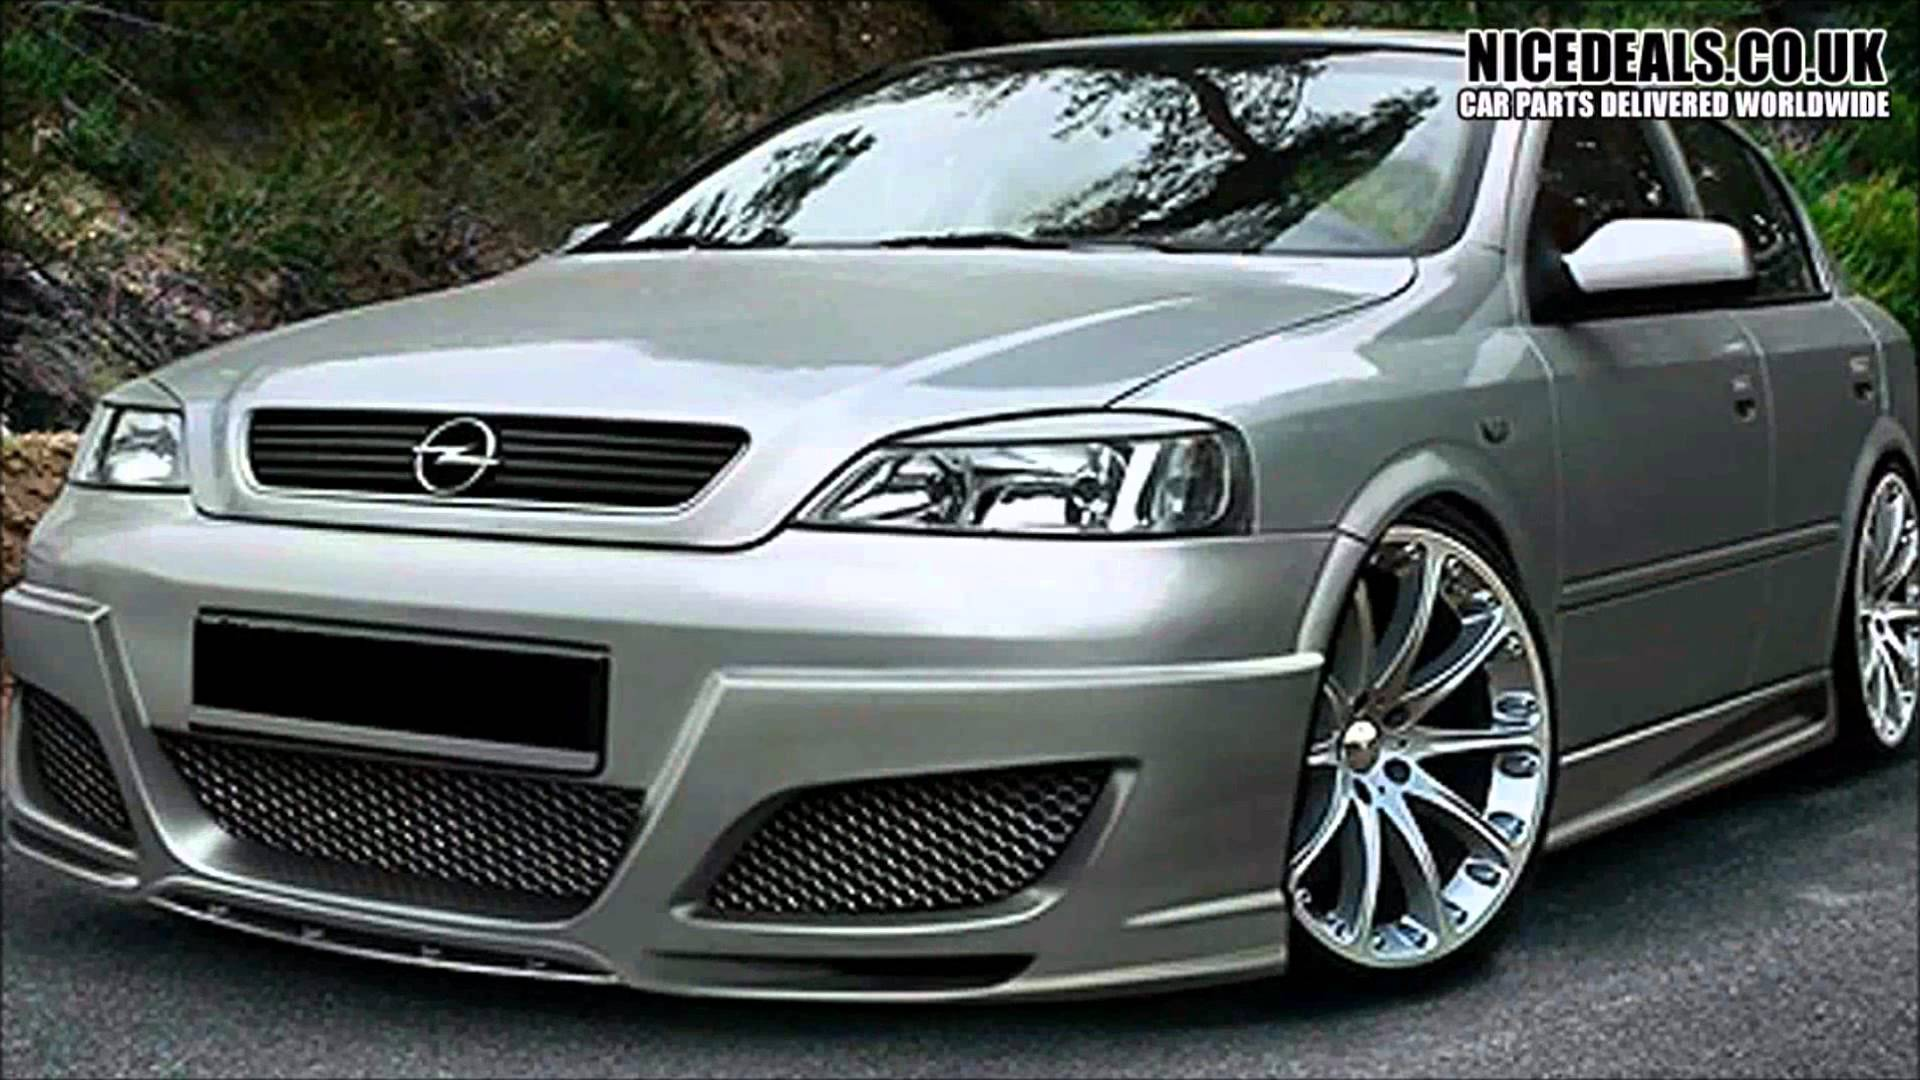 VAUXHALL ASTRA G BODY KITS, SPORTS BUMPERS, FENDERS, WINGS, SKIRTS